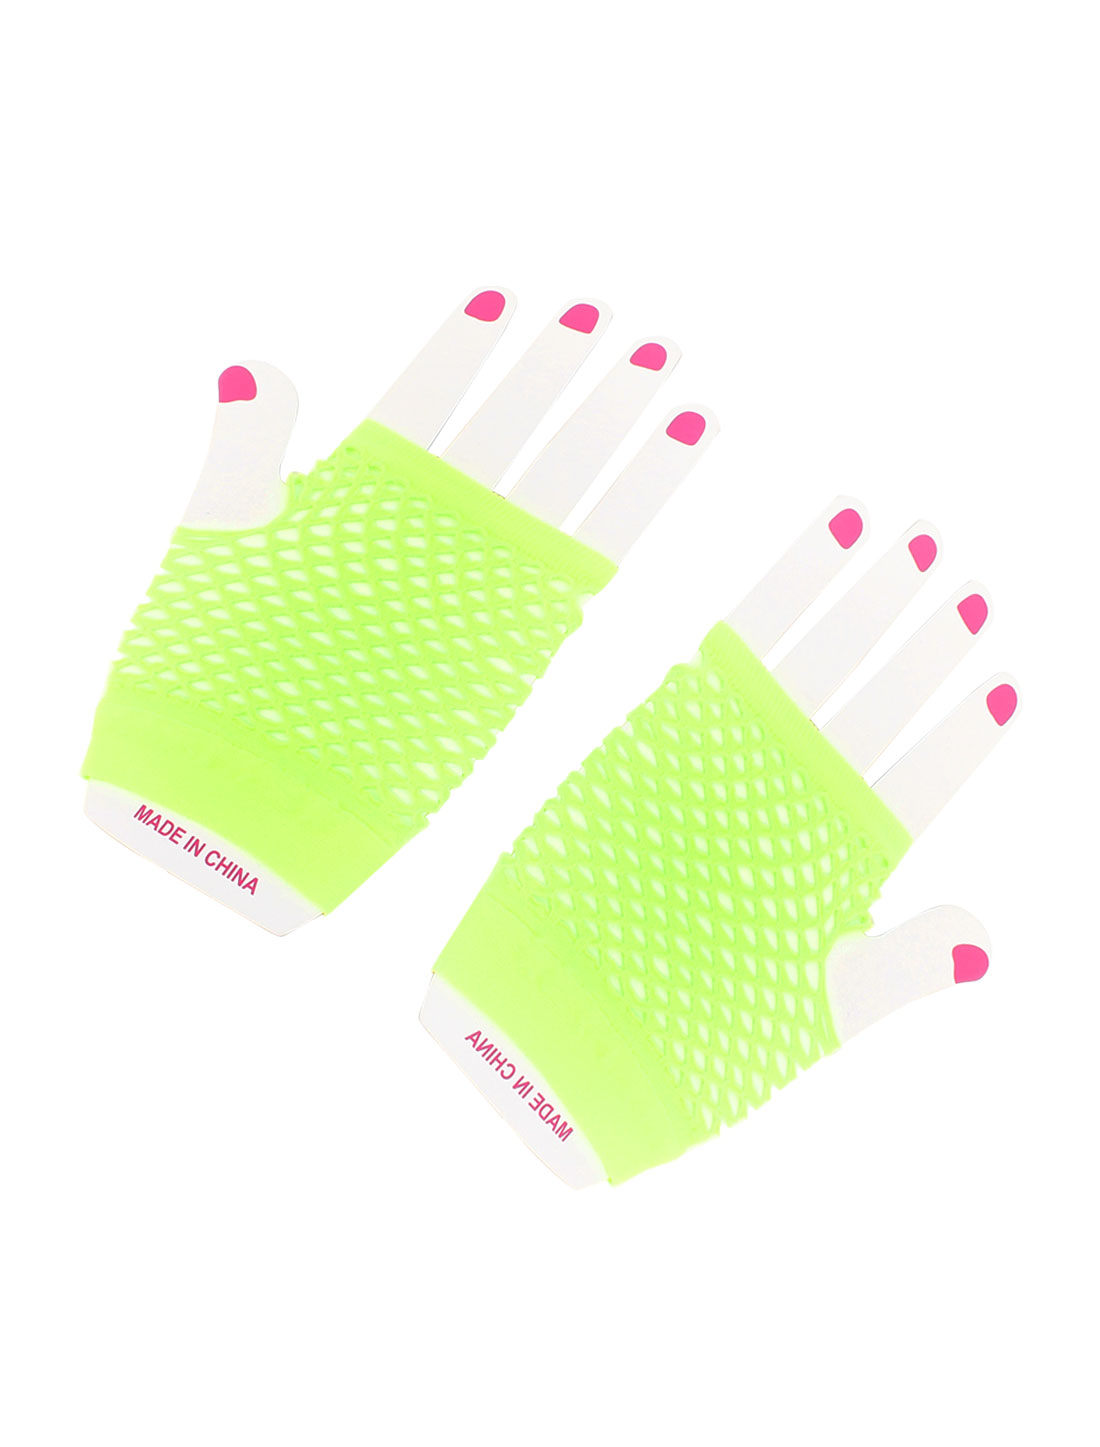 Lady Woman Yellow Green Elastic Mesh Net Fingerless Wrist Length Gloves Pair